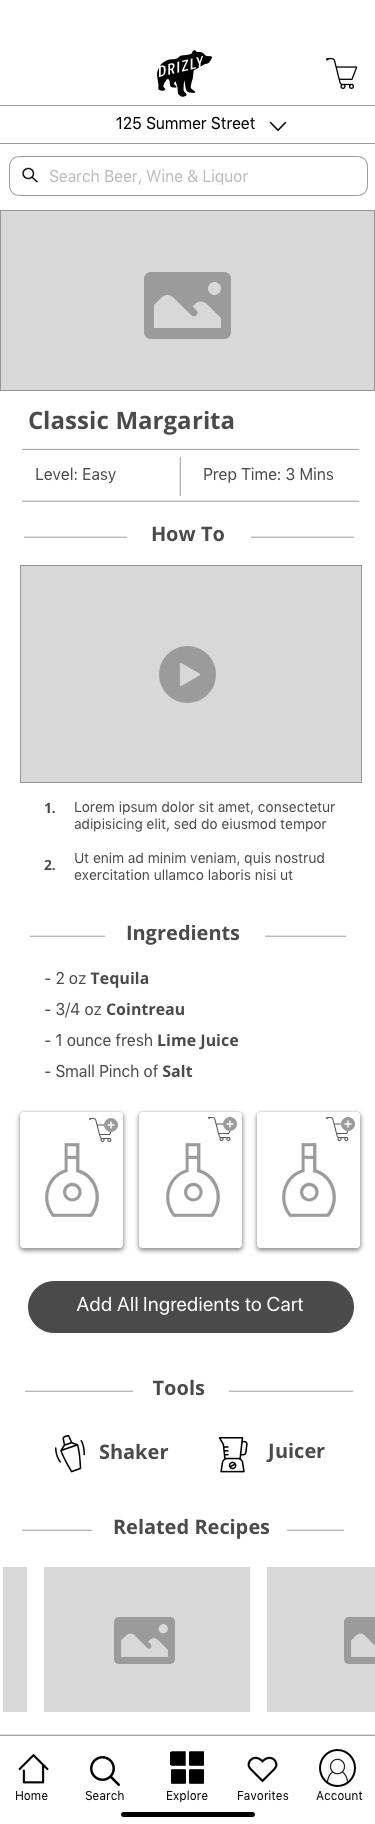 Single Recipe Page - The single recipes page gives the user easy instructions with a video how-to along with the ability to browse ingredients and purchase them directly from the page.